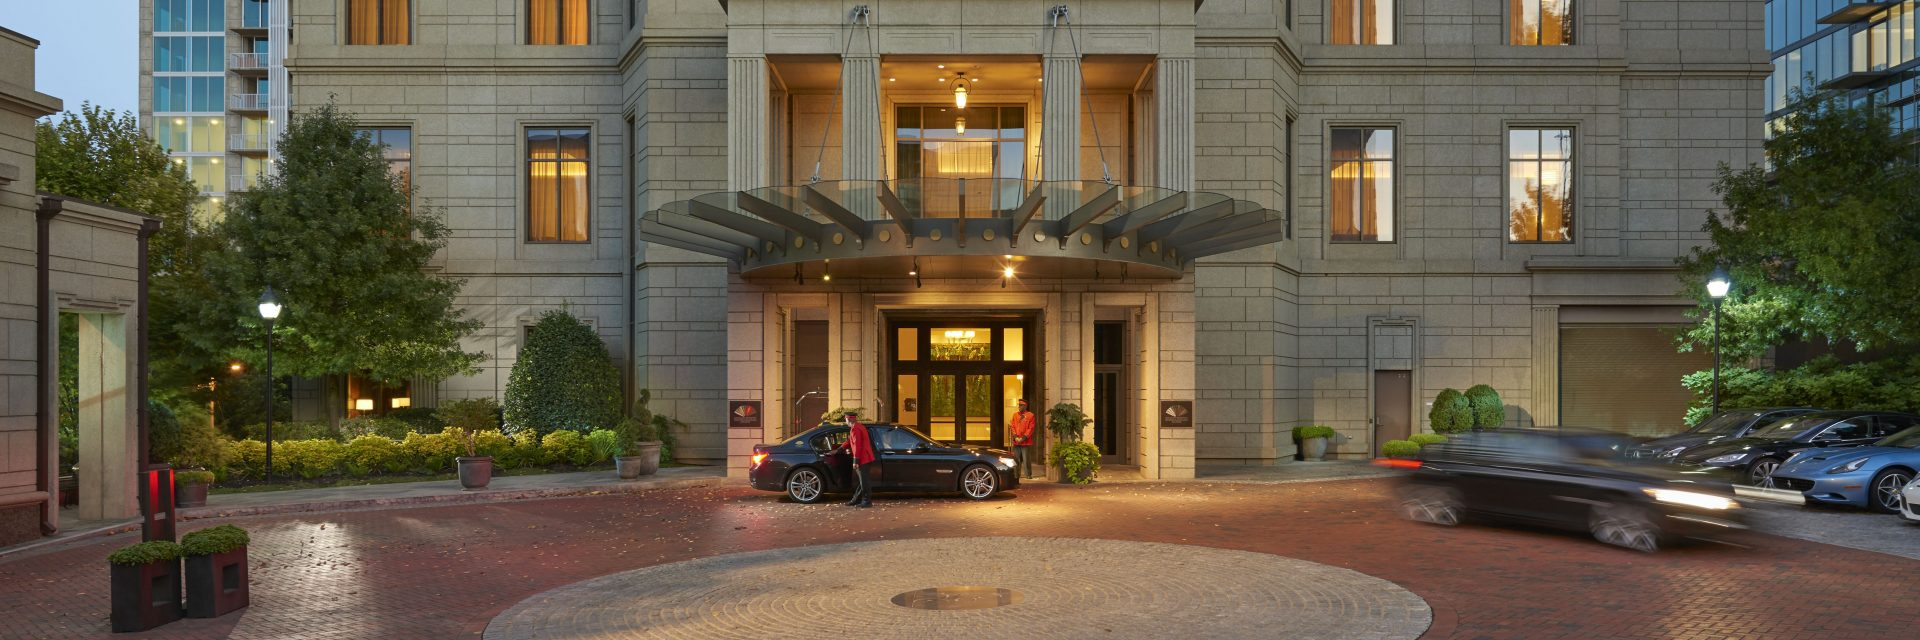 The entrance to a luxury hotel, managed by by hotel asset management company, Hotel Asset Value Enhancement